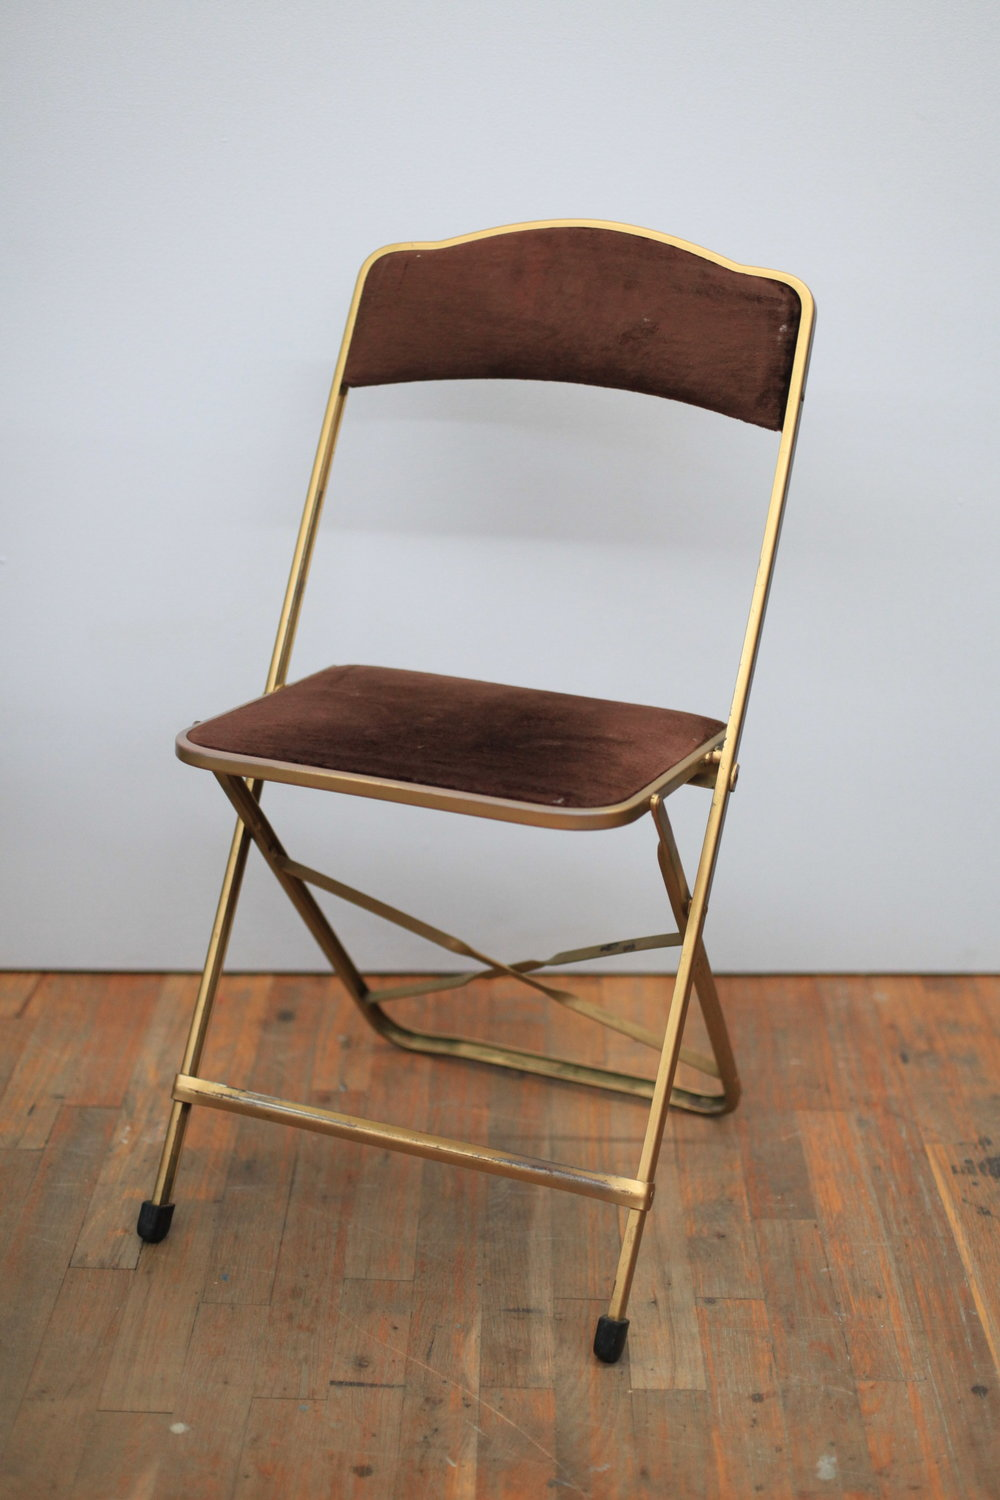 BROWN VELVET & GOLD FOLDING CHAIR  $60